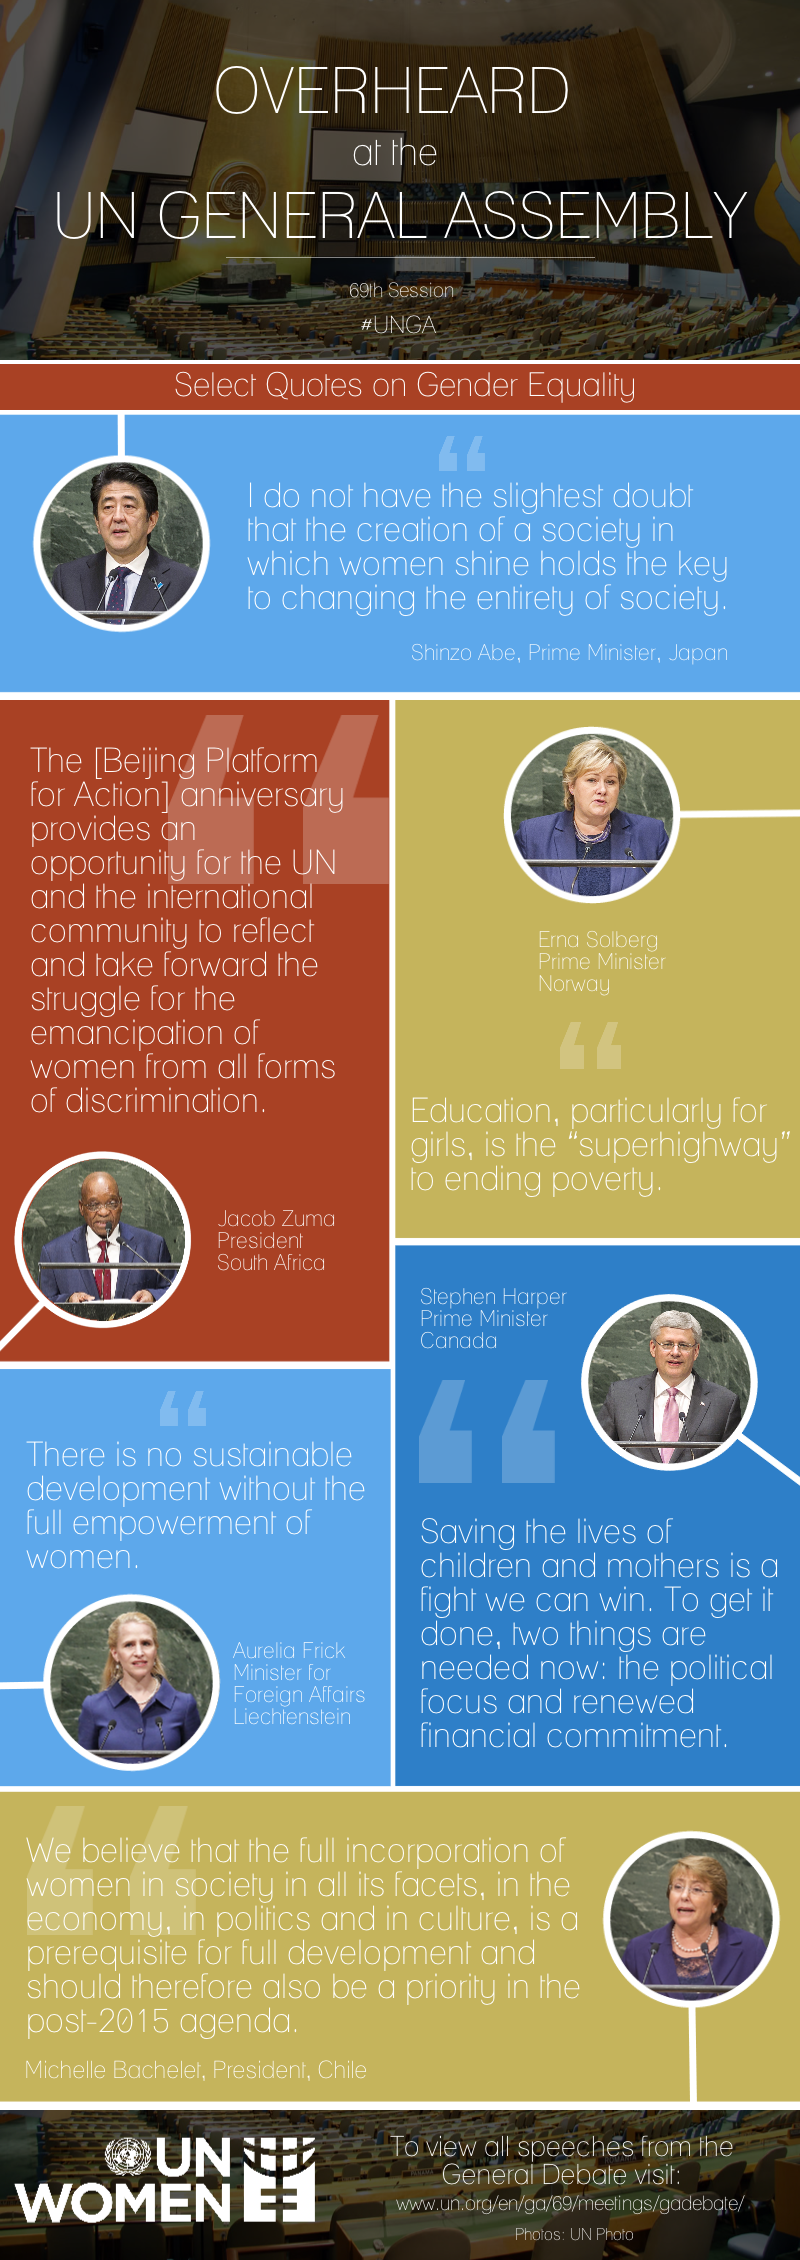 Gender Equality Quotes Selected Quotes On Gender Equality Unga 2014  Weobservatory Blog